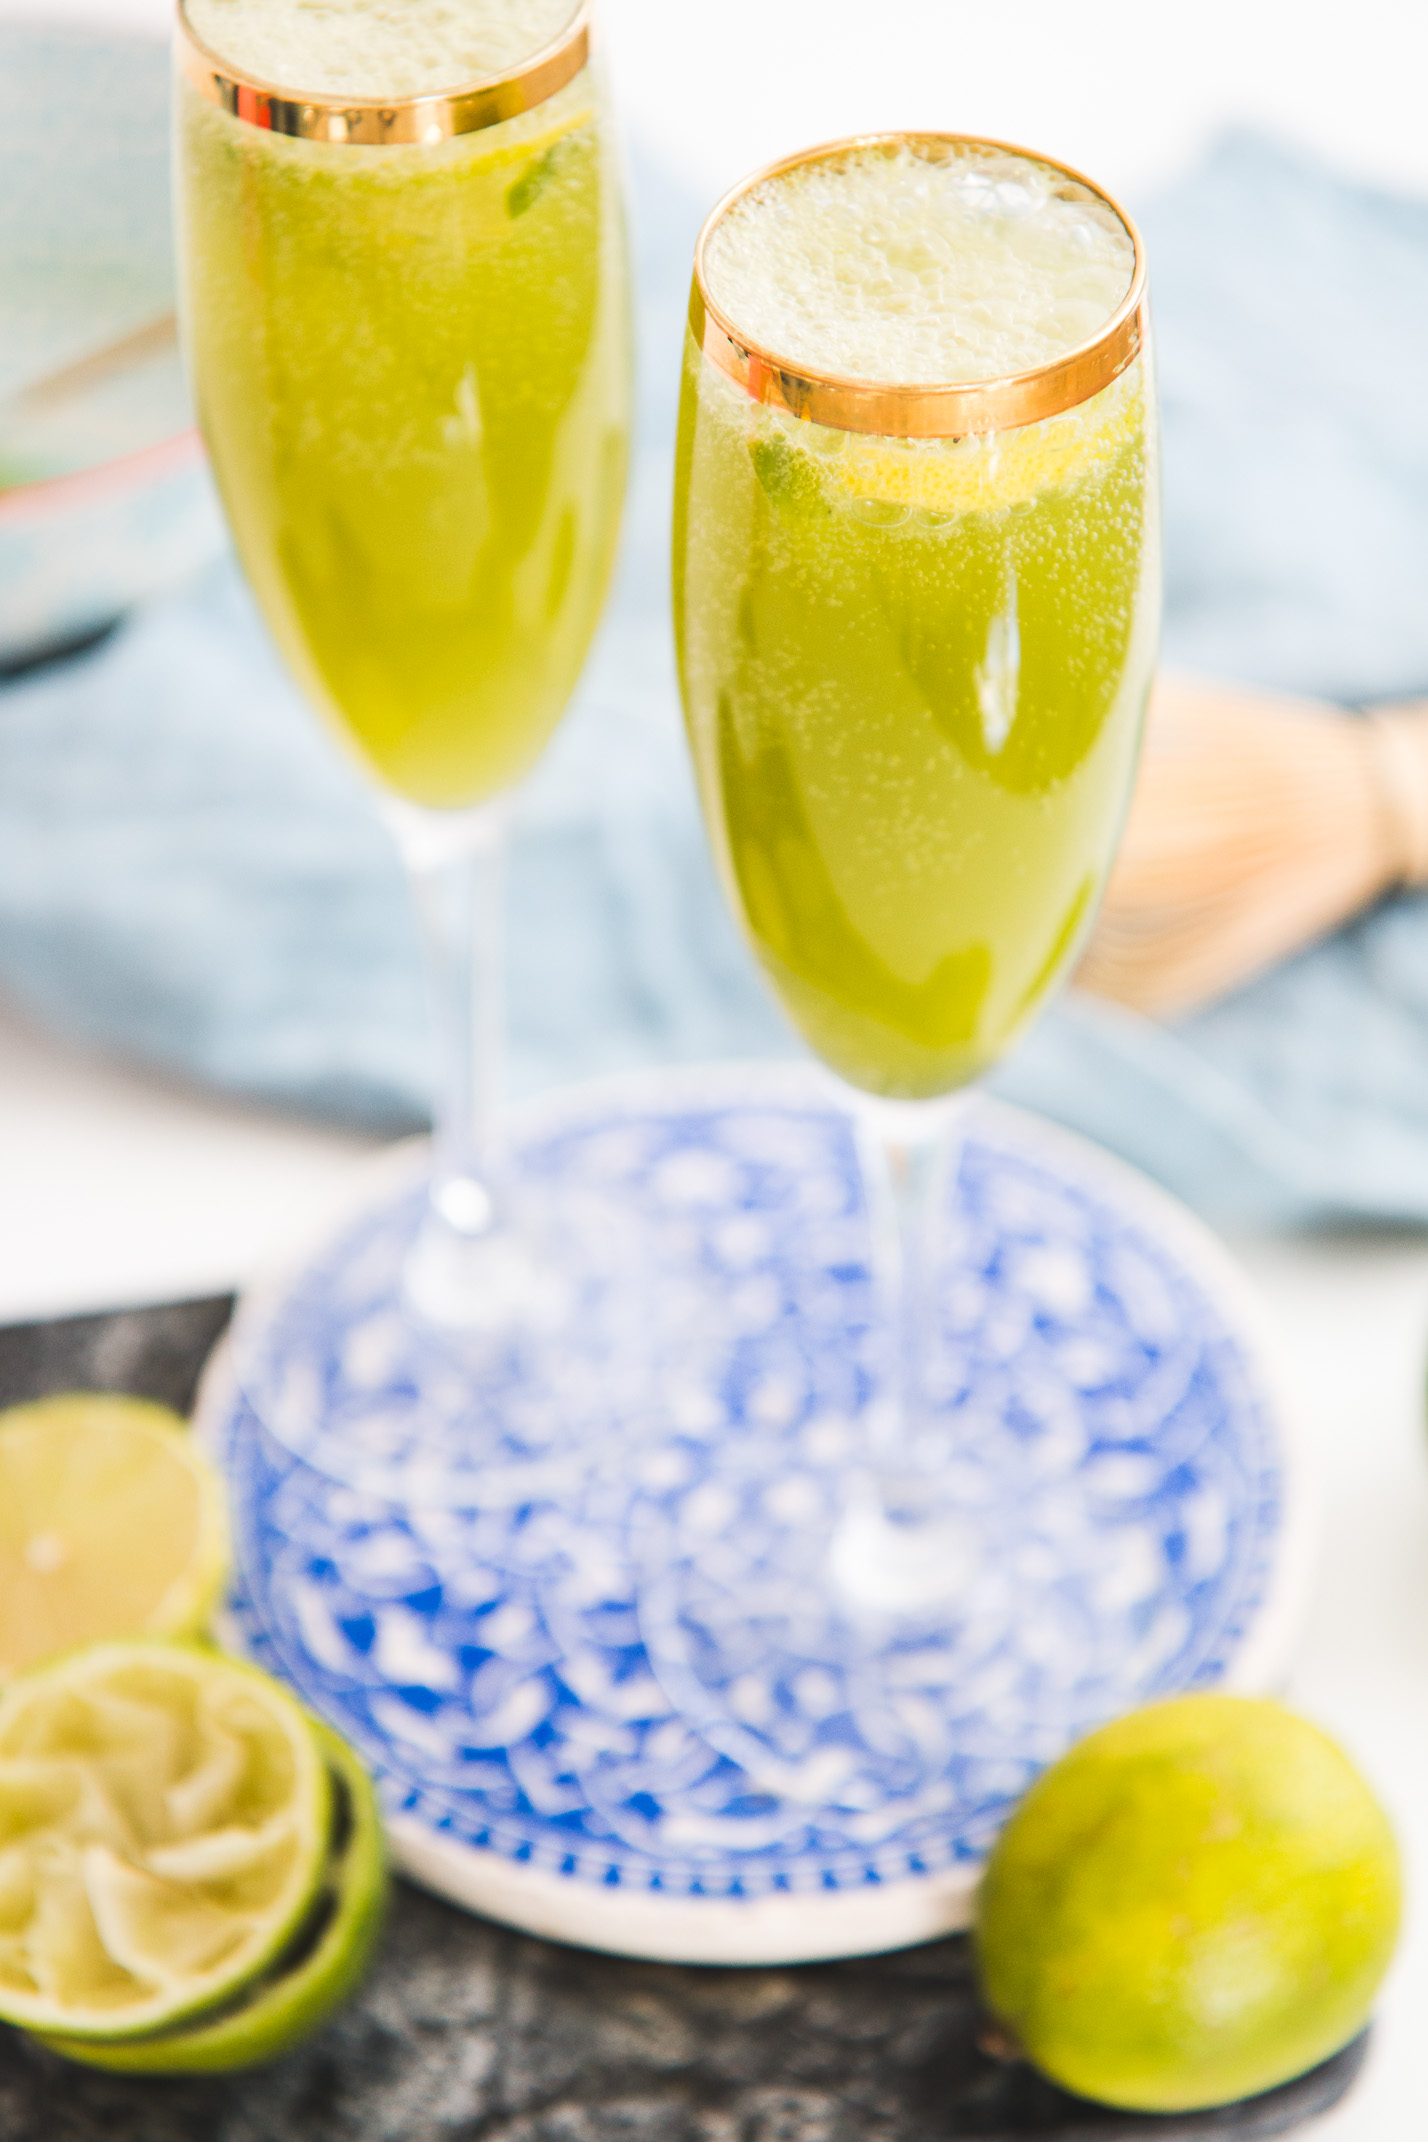 Matcharinha Nonalcoholic Drink with Matcha Green Tea | Love Daily Dose